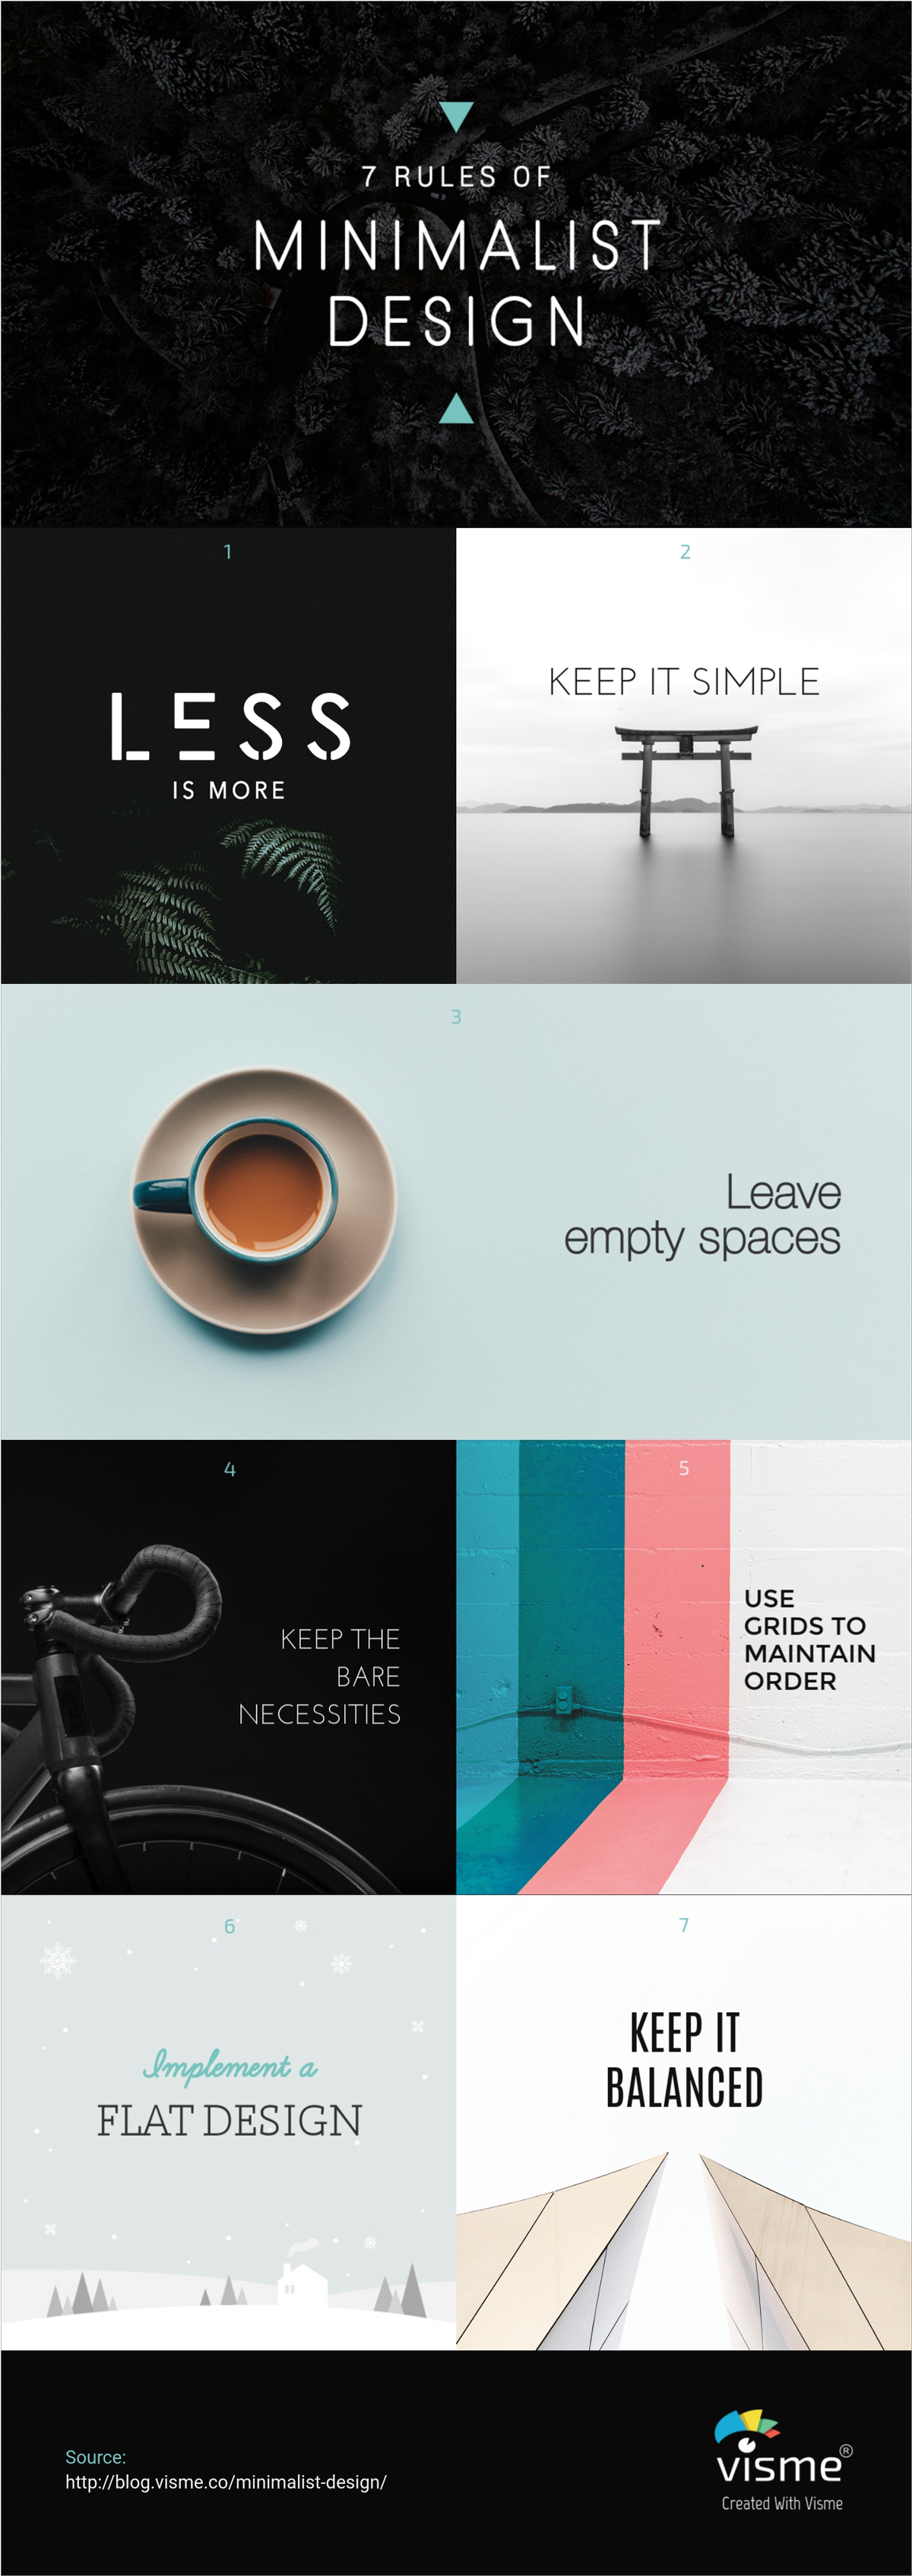 Minimalist Graphic Design 20 Examples To Inspire Your